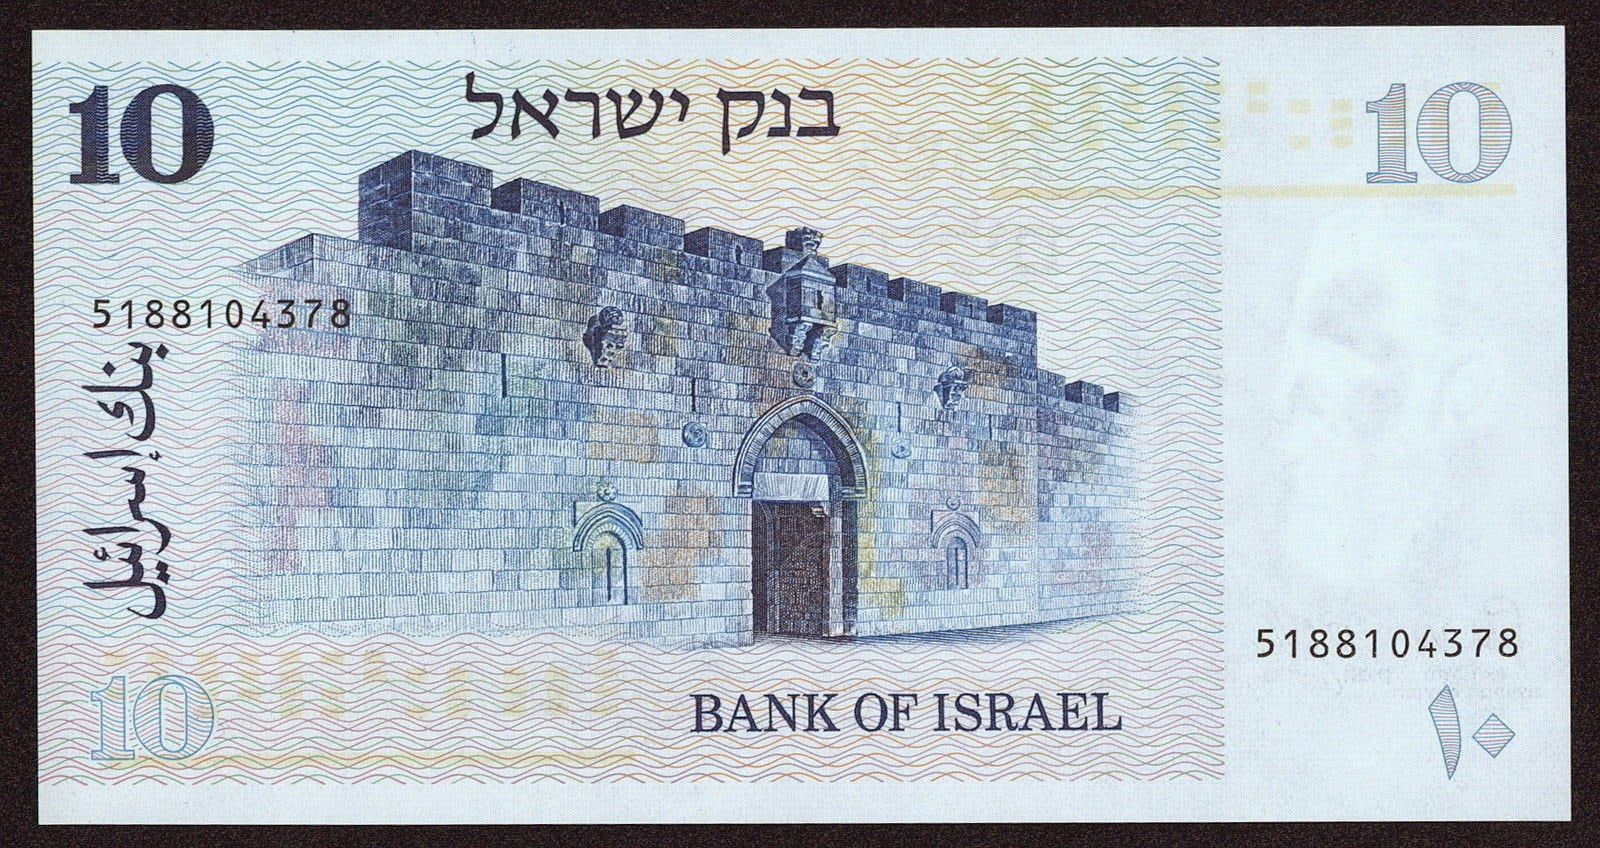 Israeli currency money 10 Sheqalim banknote 1978 Zion Gate in the Old City of Jerusalem